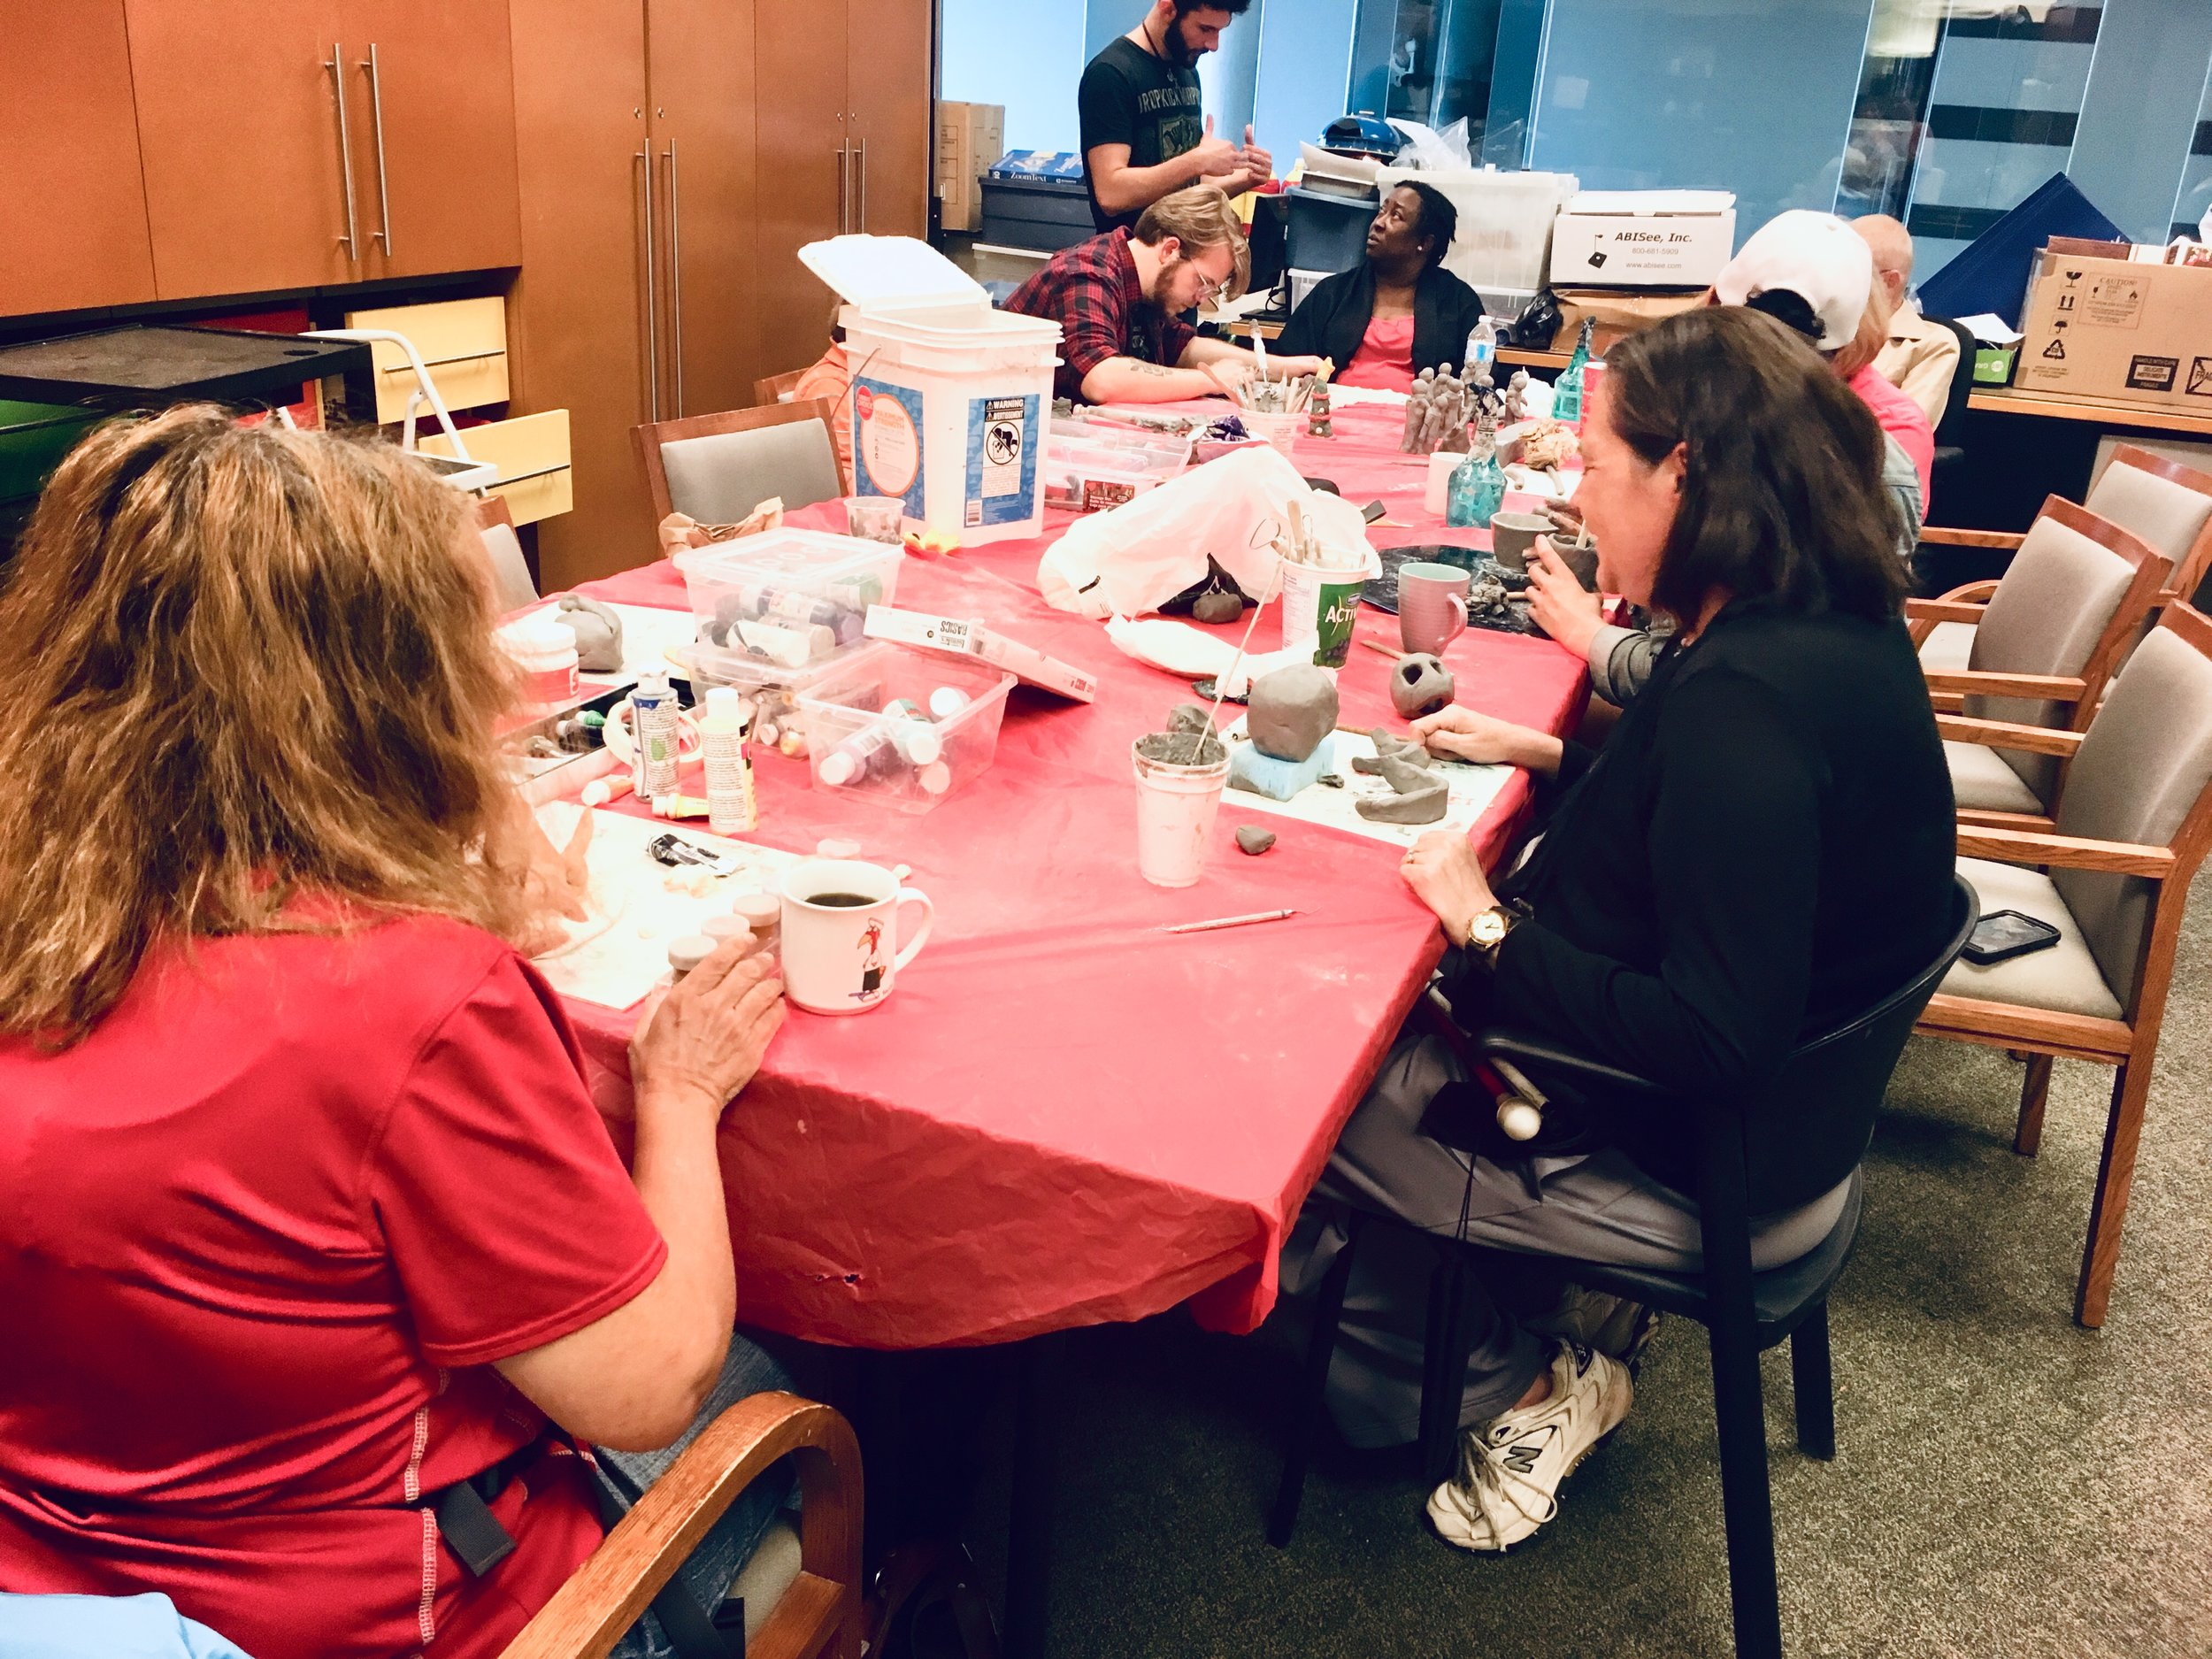 Photo Description: Members seated at a long rectangular tables with a red table clothes and clay on the table; seven individuals are seated at the table and one individual on the far left corner is standing speaking to chapter president, Alicia Modeste.